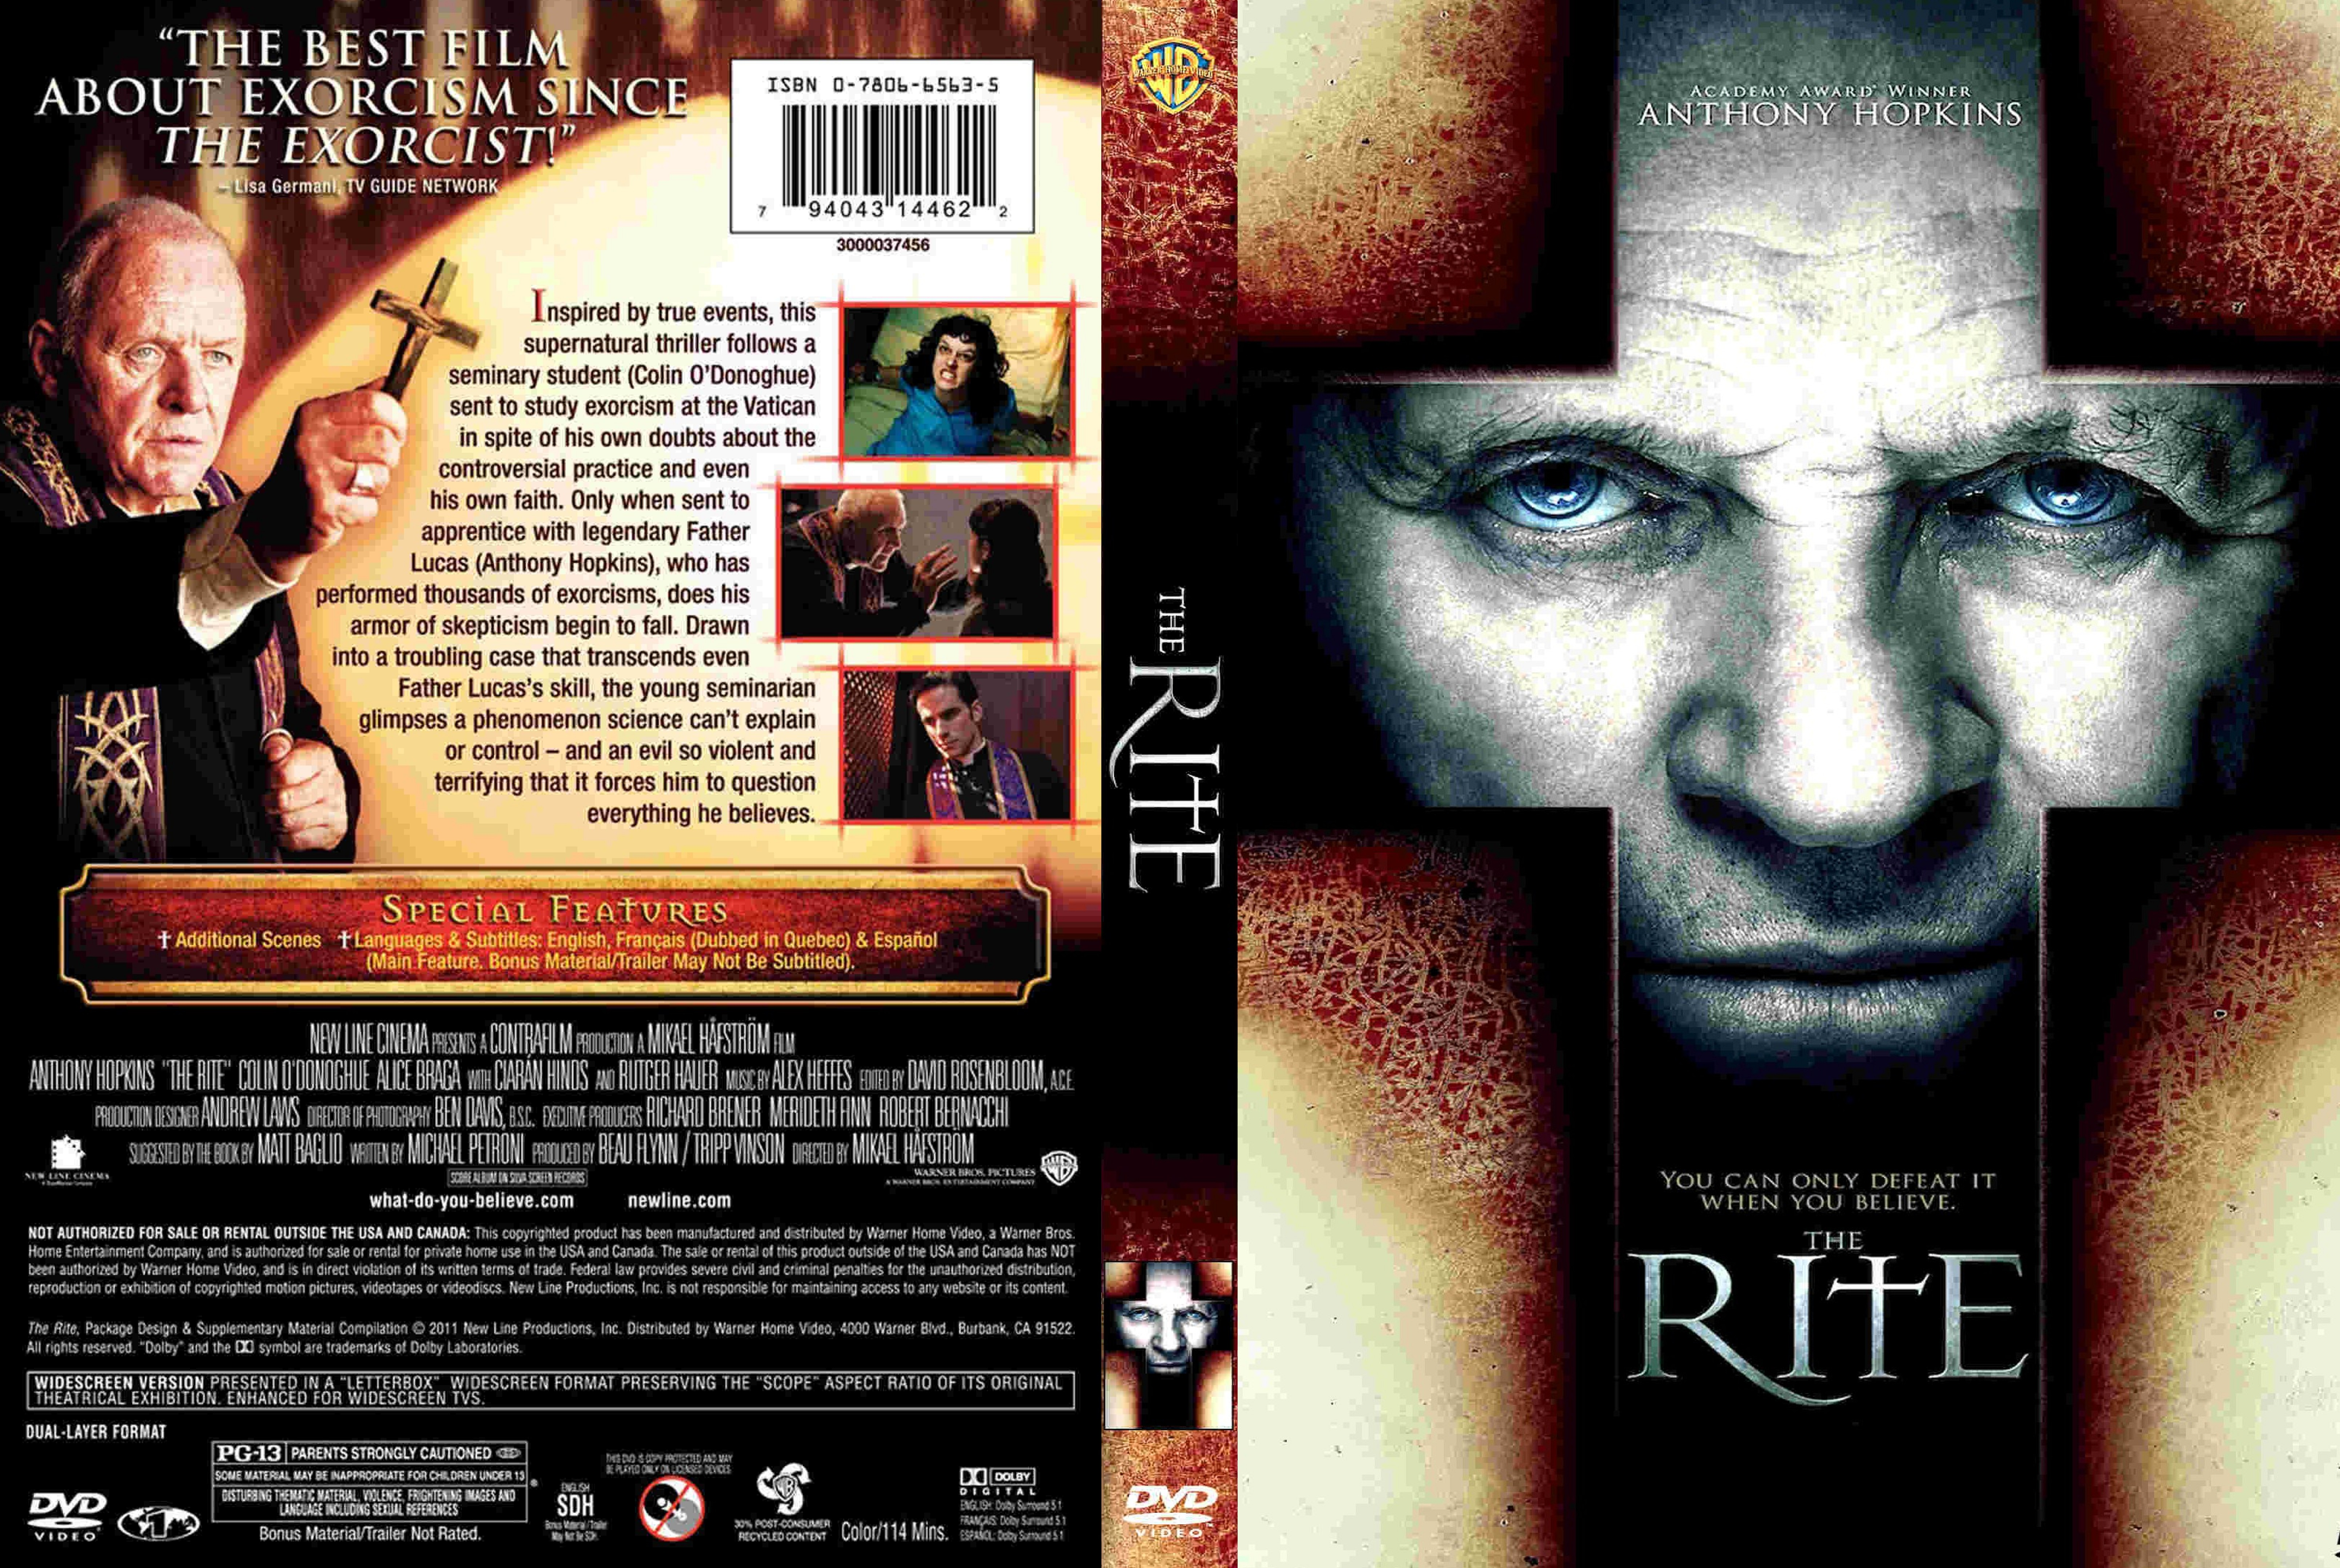 The Rite Dvd Cover